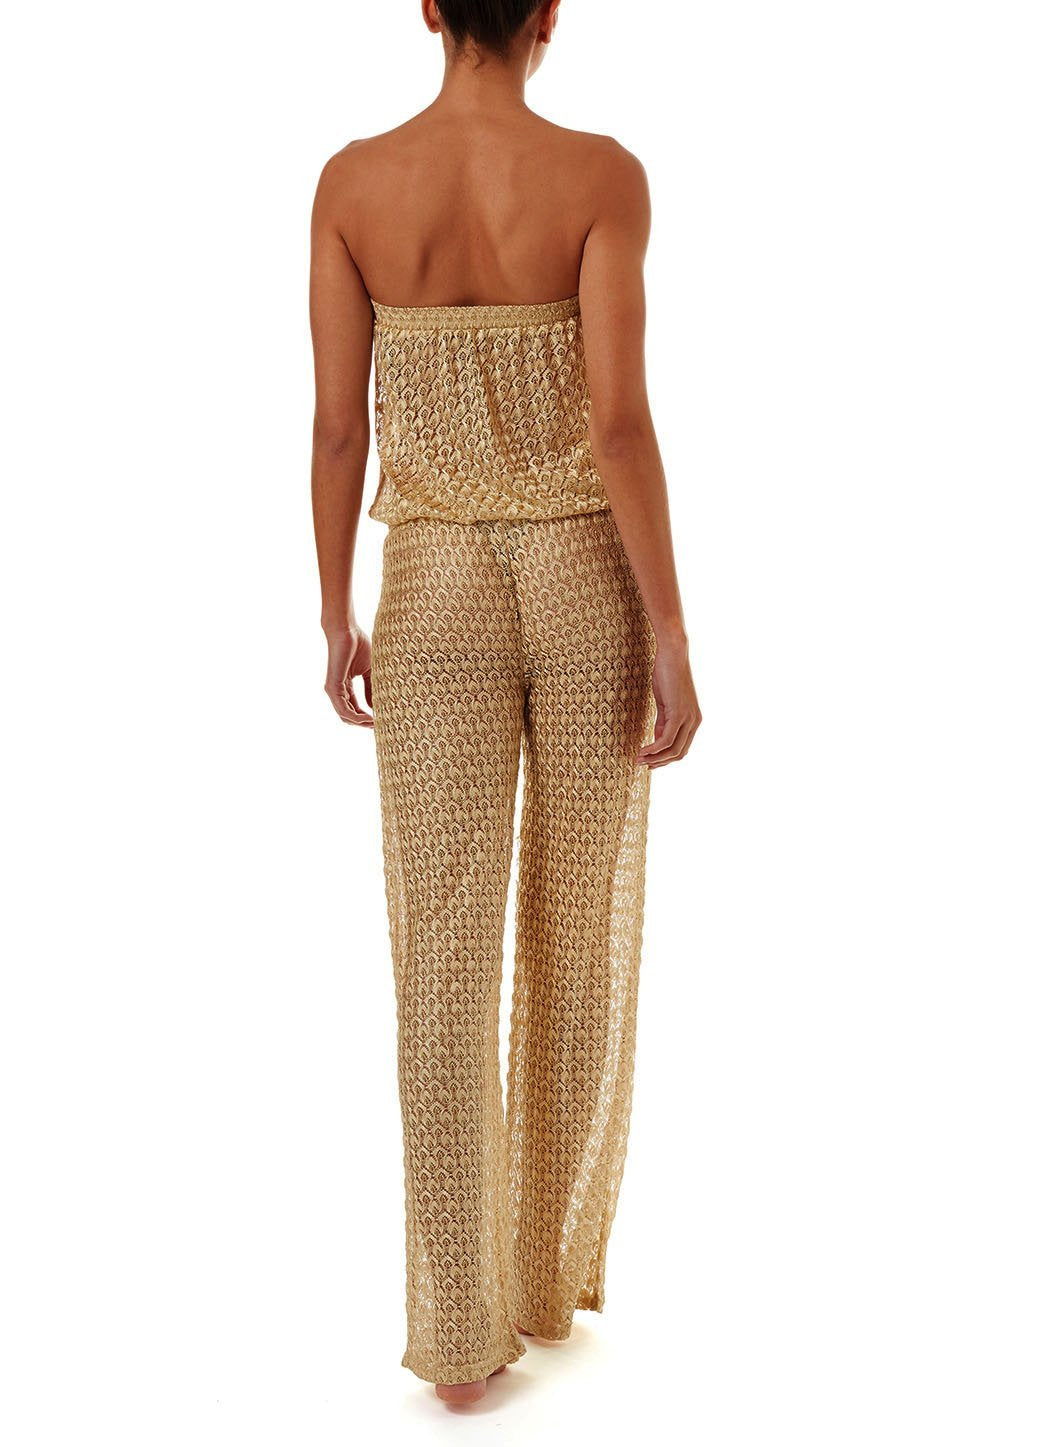 grace gold knit bandeau jumpsuit 2019 B